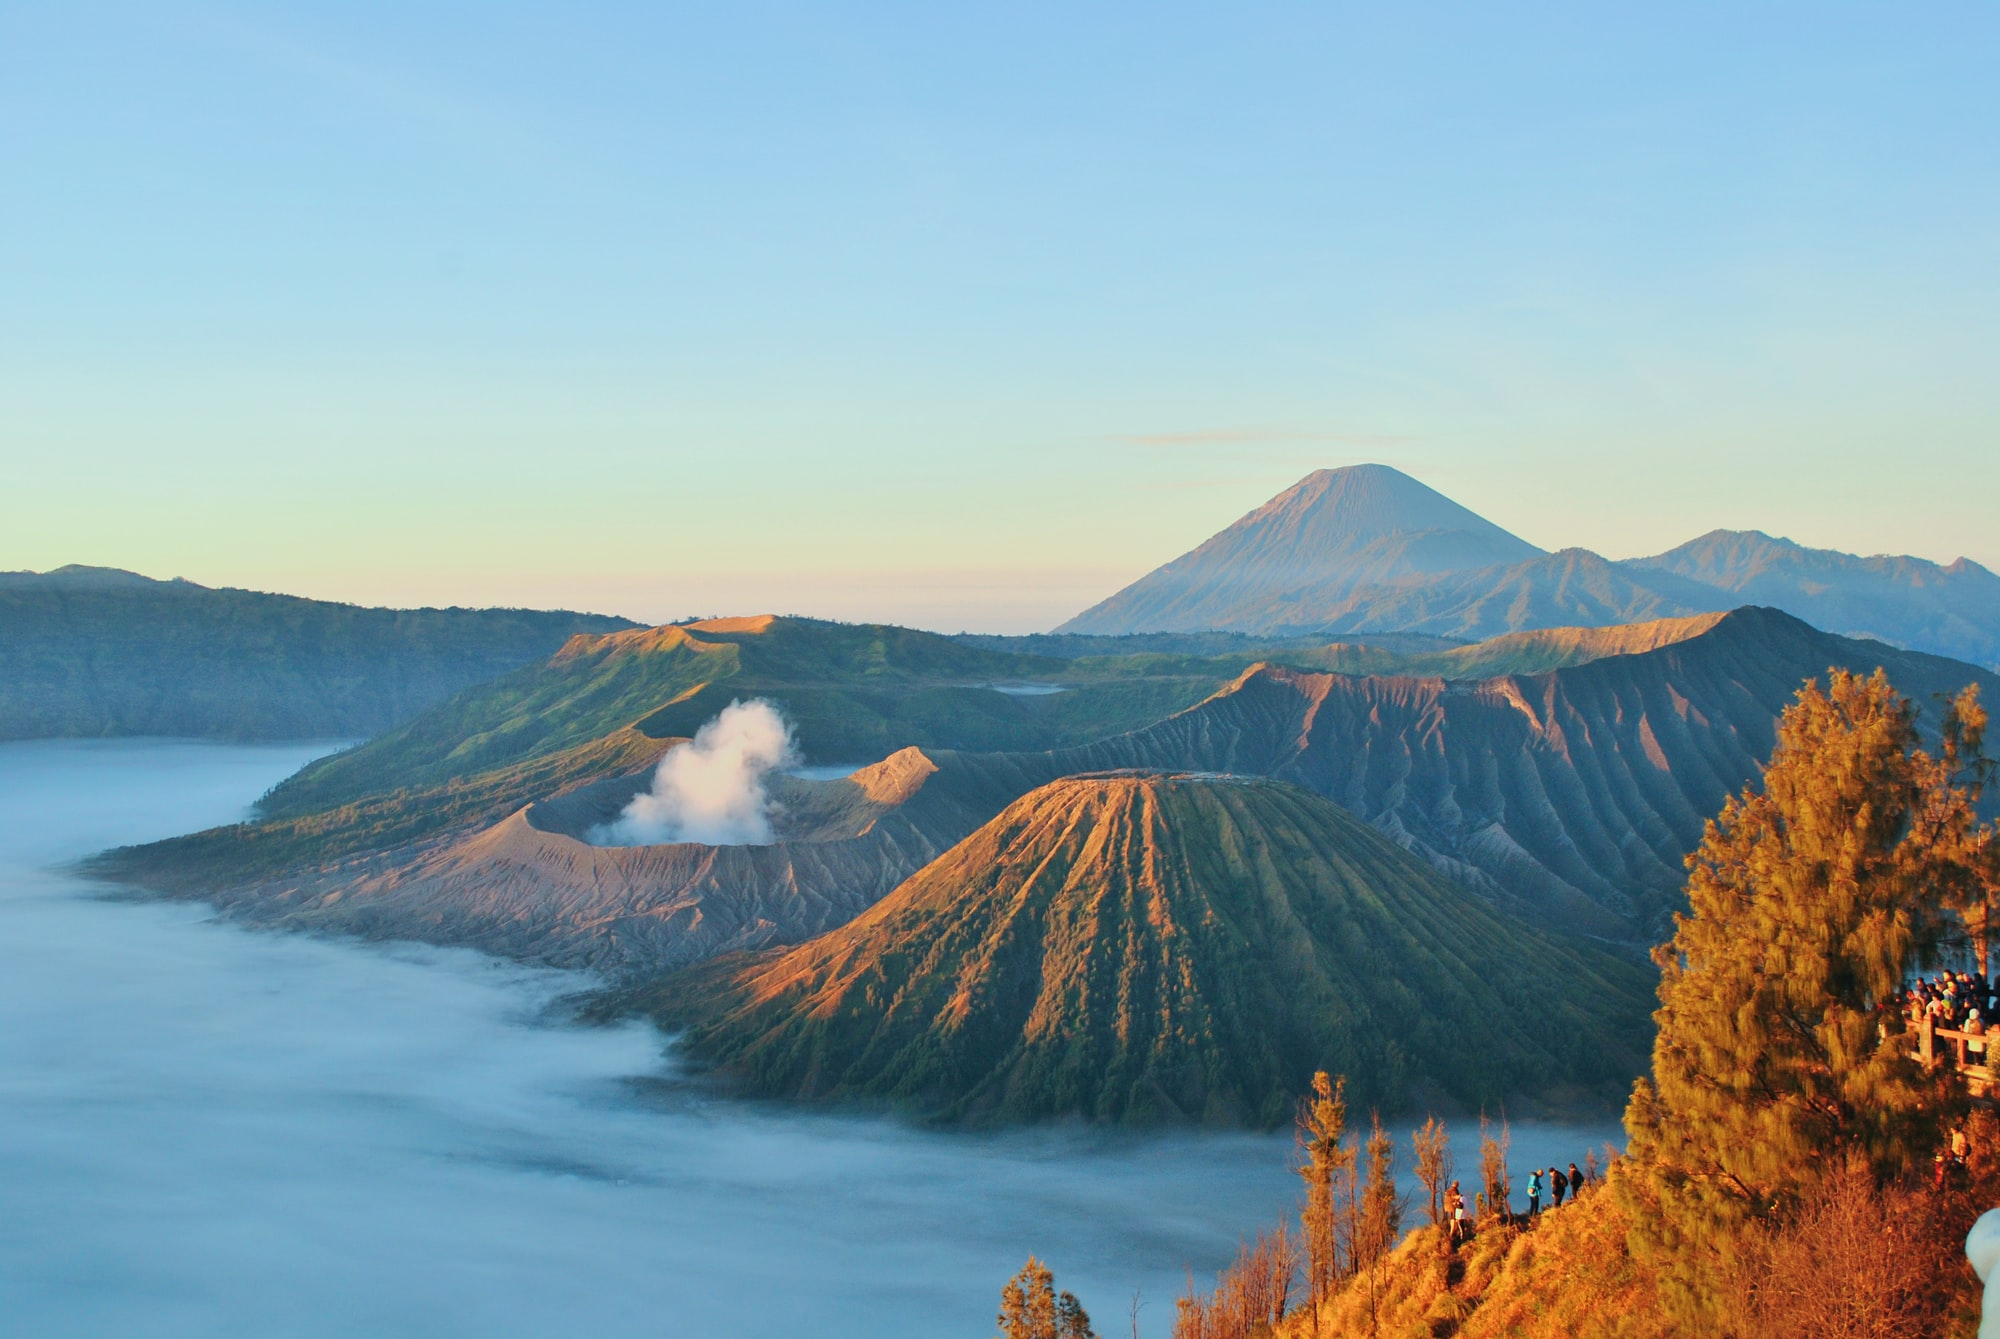 Bromo Mountain, East Java, Indonesia - Best Place To Visit In Indonesia